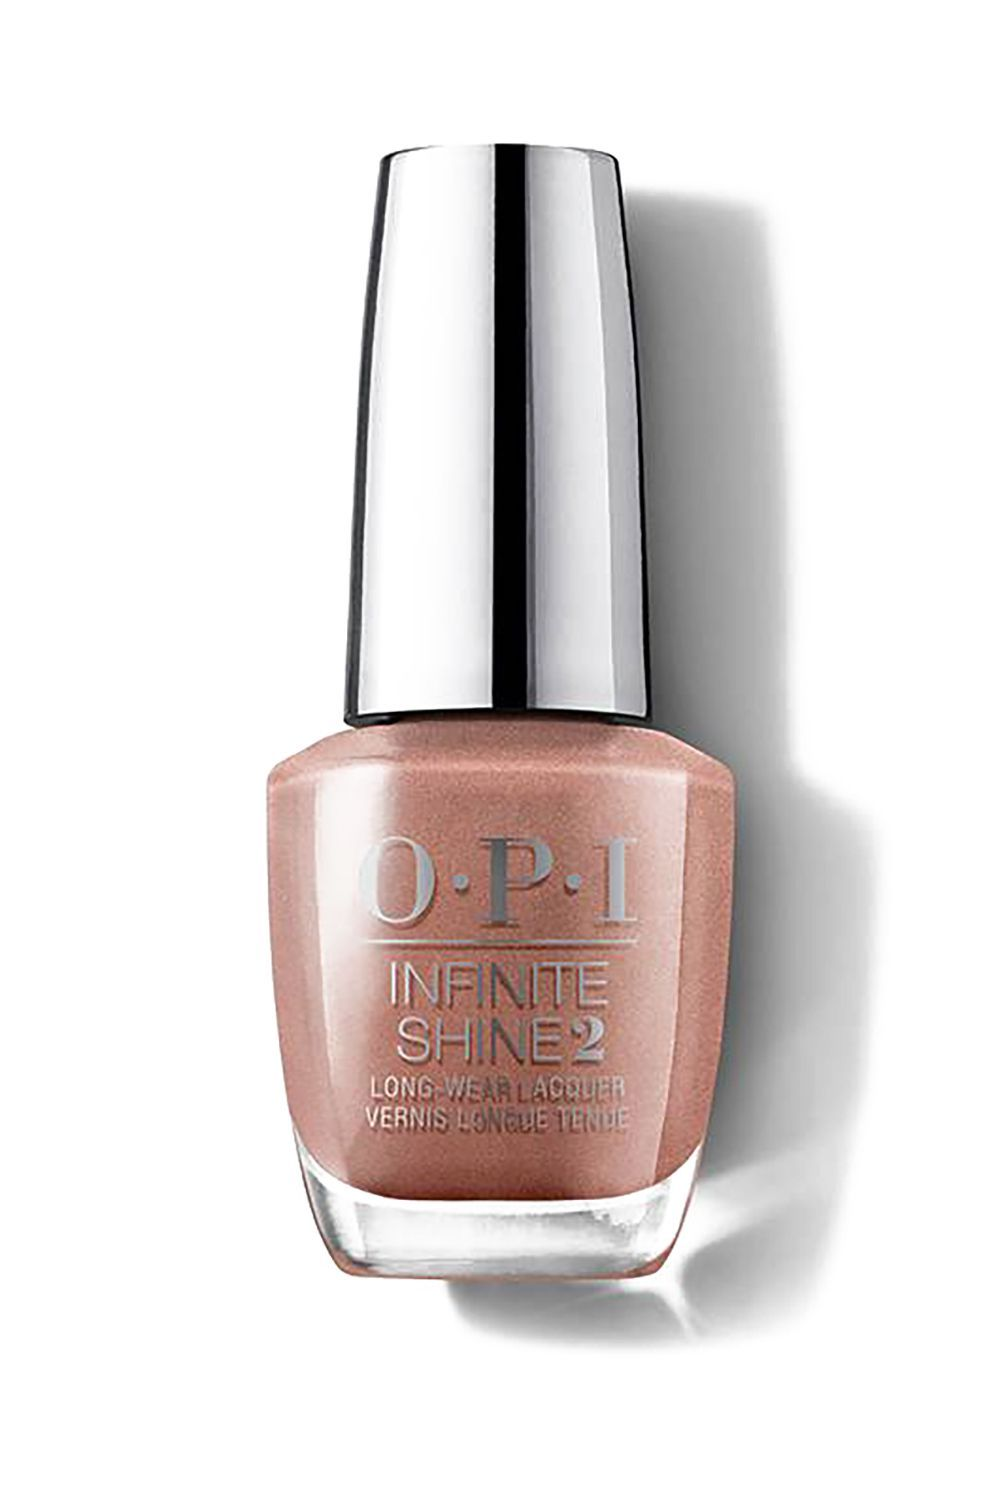 Glitter Nail Polish - OPI® Official Site                                         Ad                                                                                                                 Viewing ads is privacy protected by DuckDuckGo. Ad clicks are managed by Microsoft's ad network (more info).